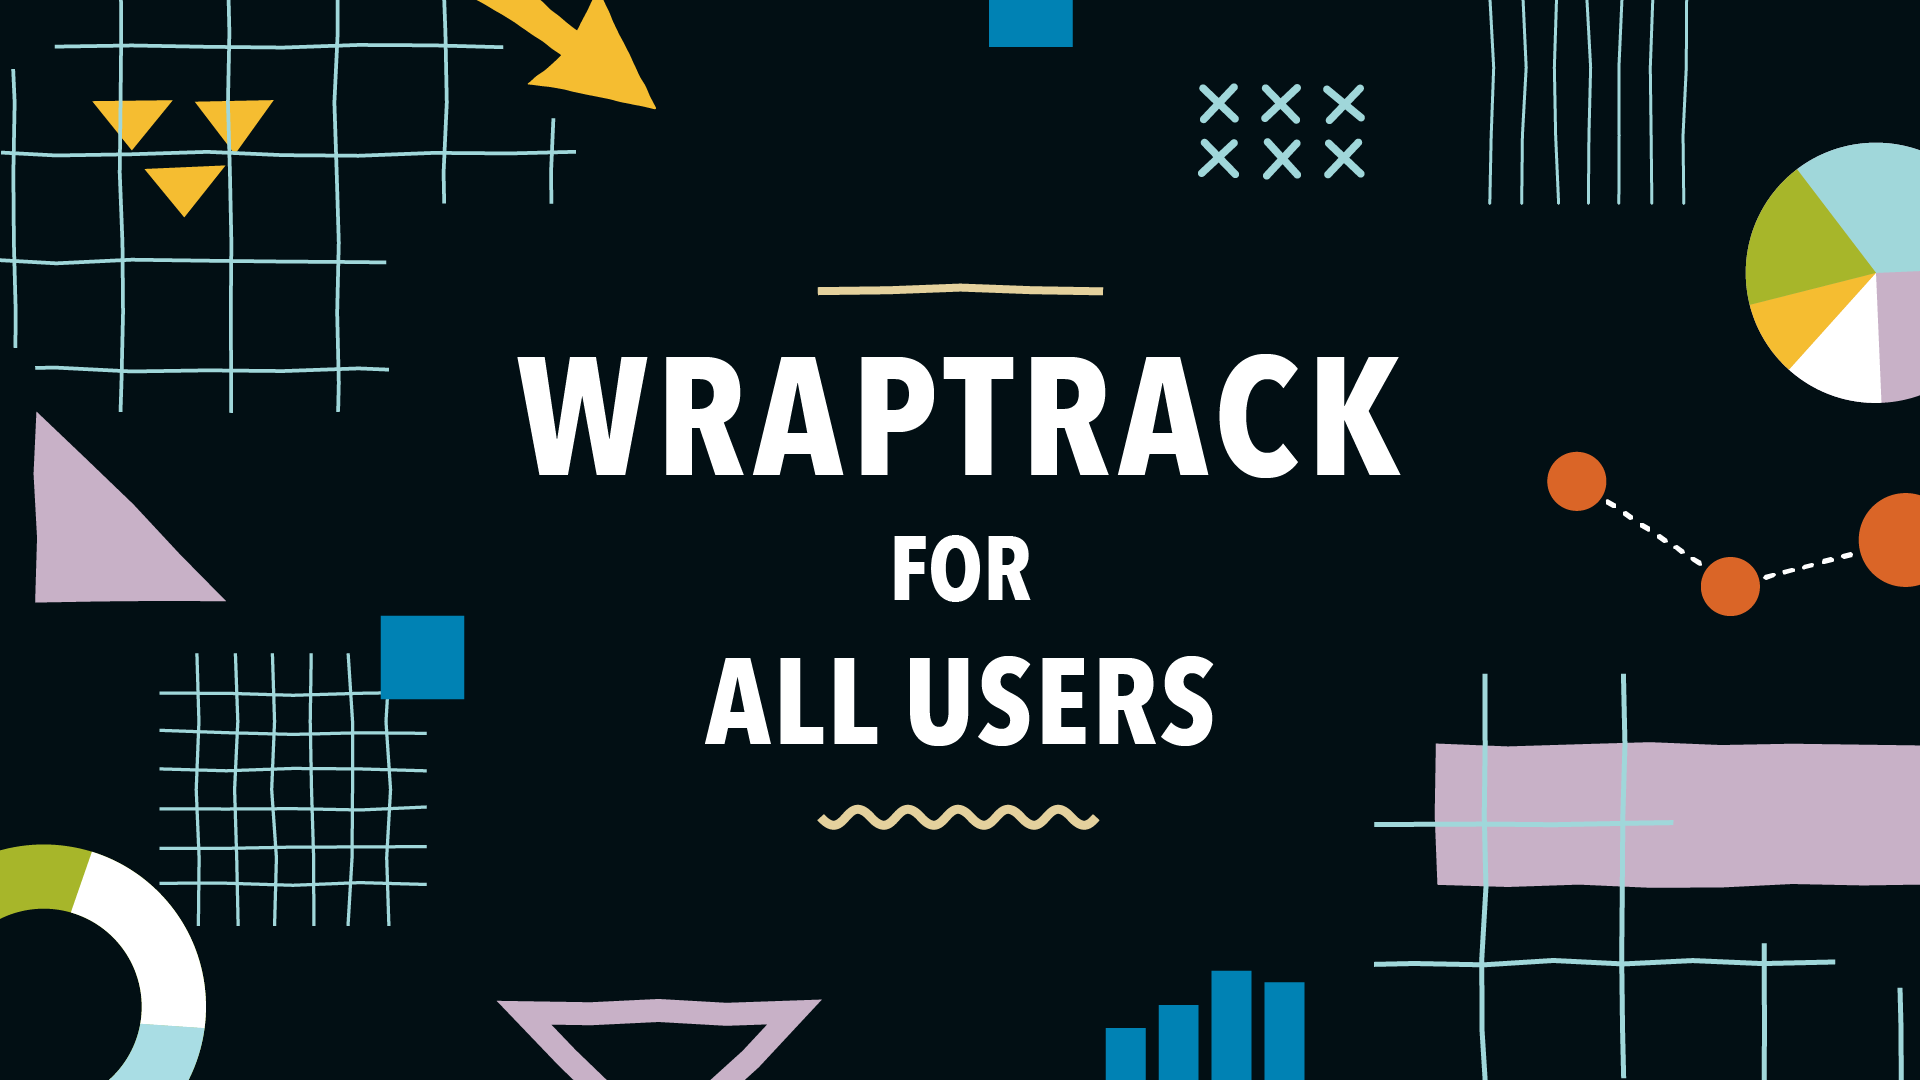 WrapTrack for All Users